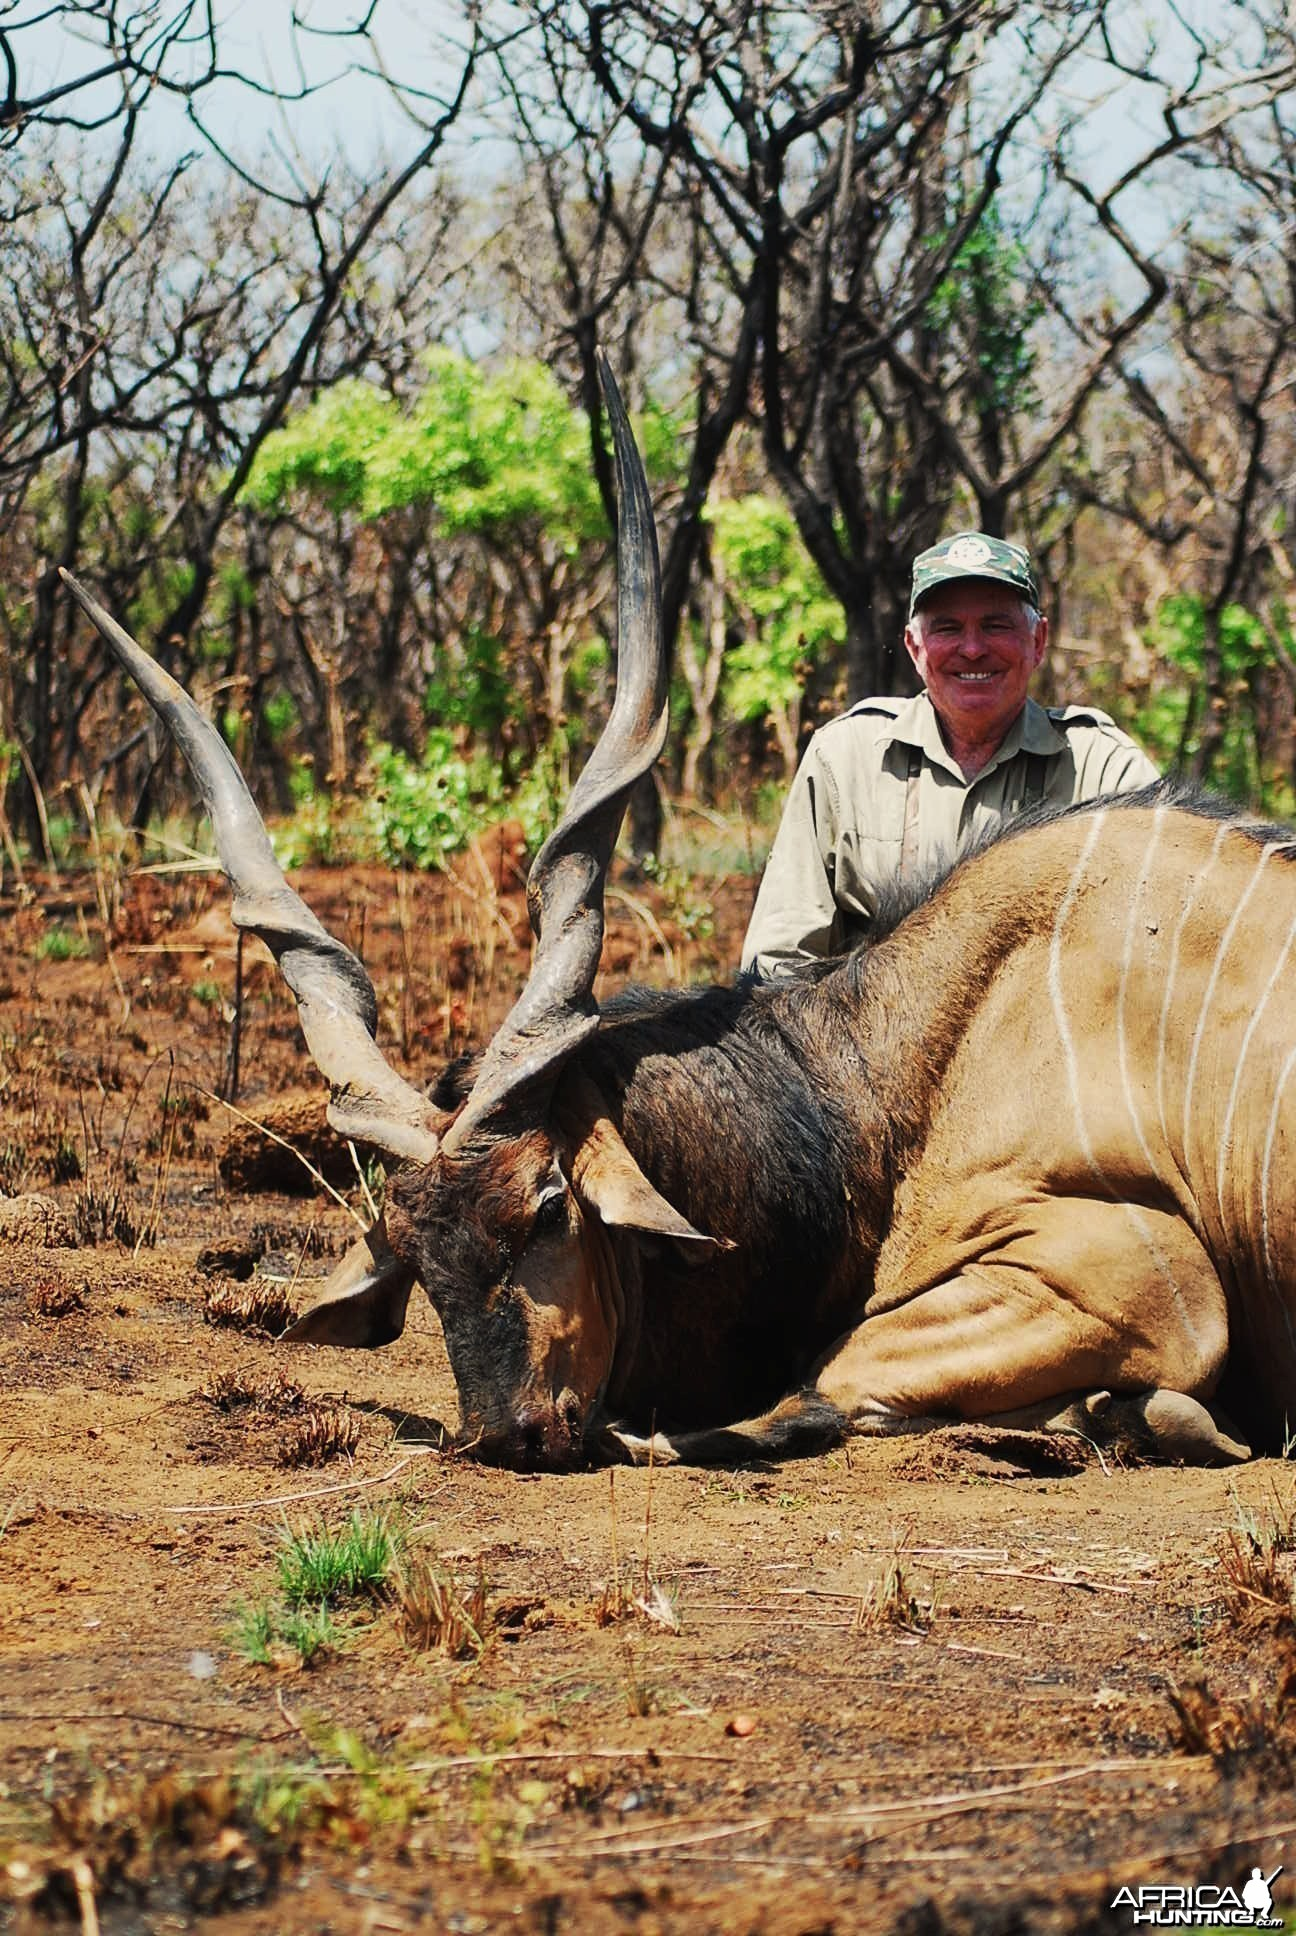 56 inch Eland hunted in CAR with Central African Wildlife Adventures